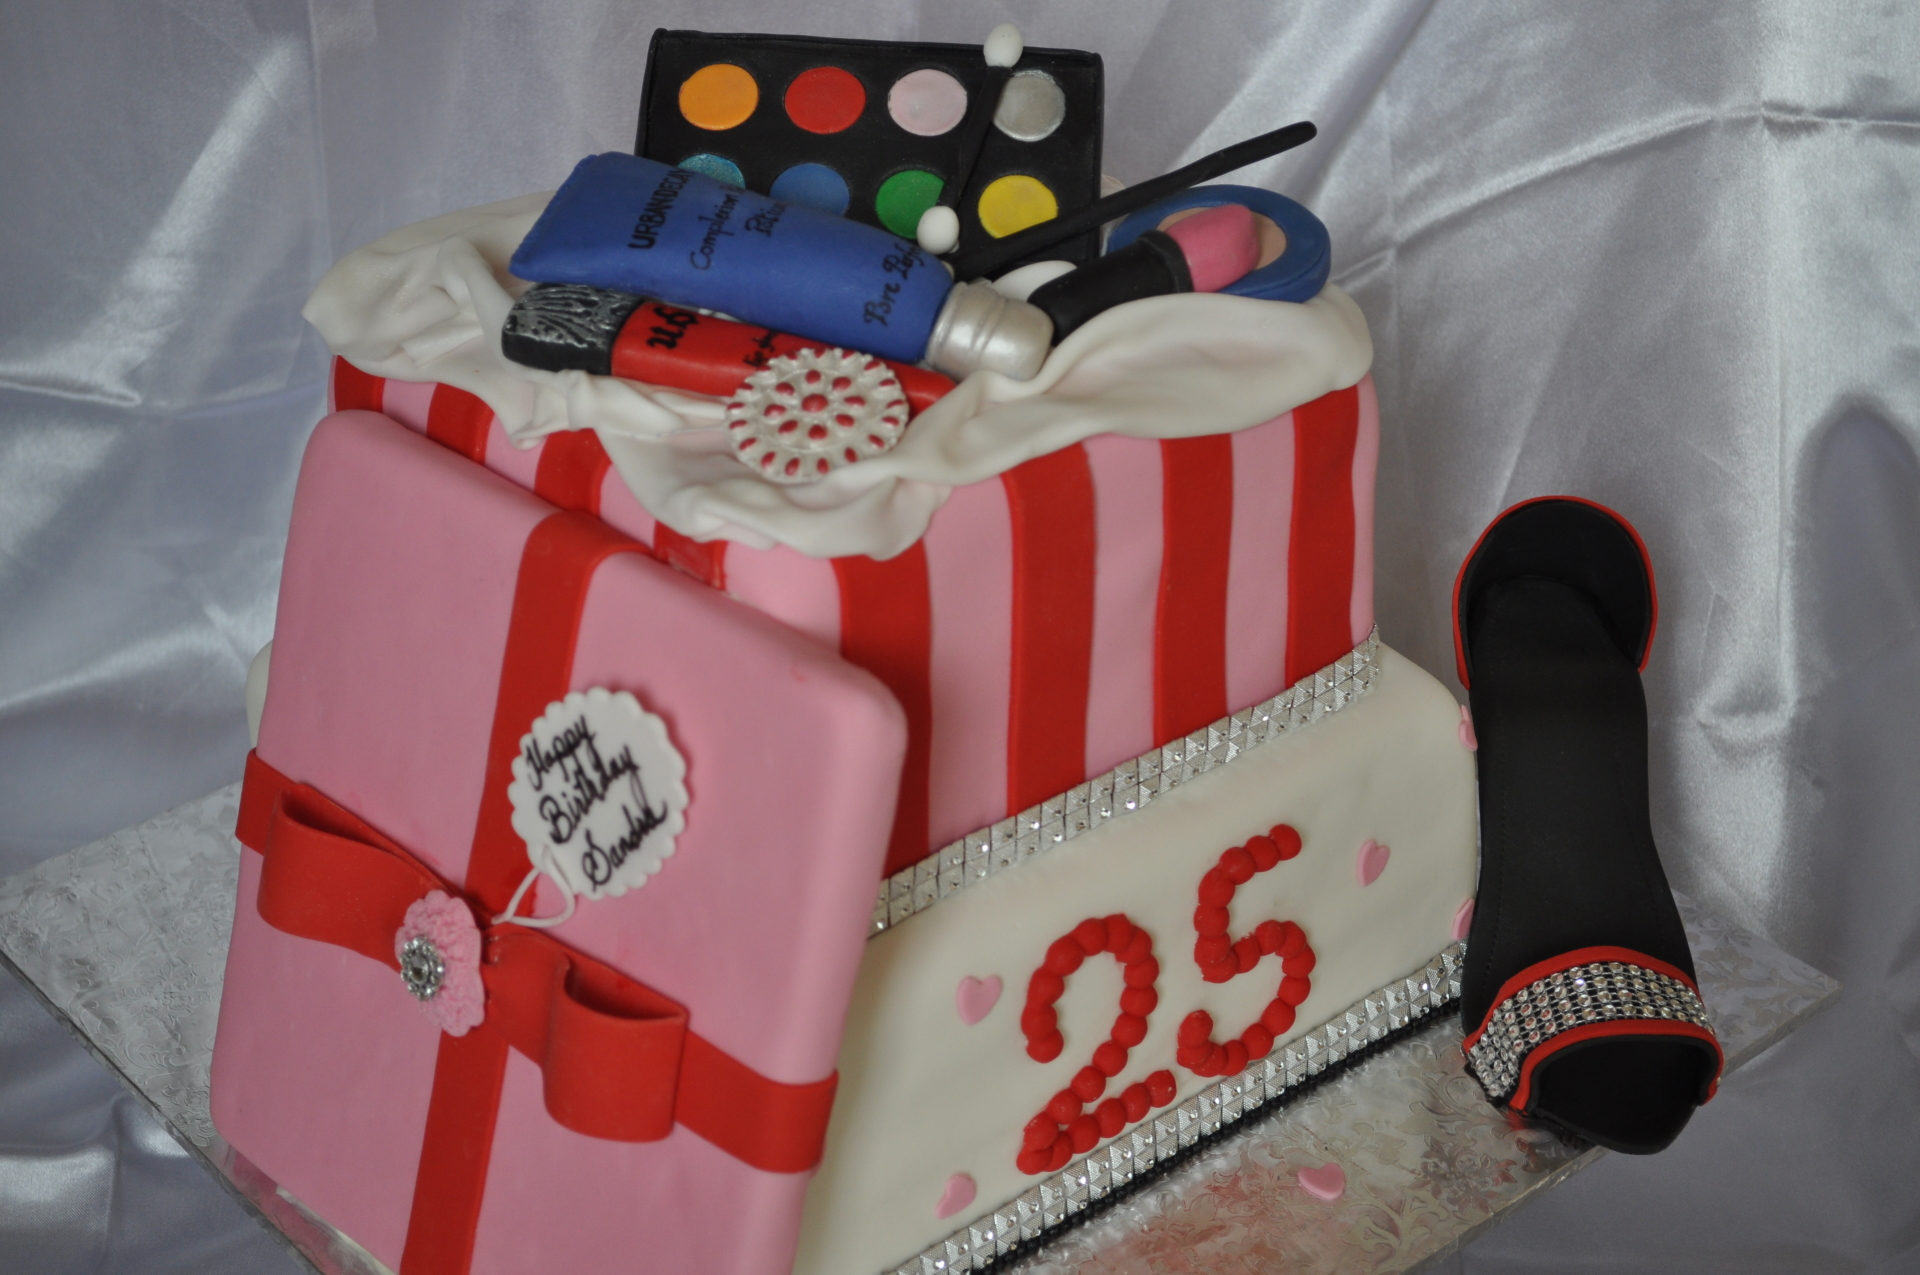 Make up cake, 25th birthday cake, fashionista cake,glam cake